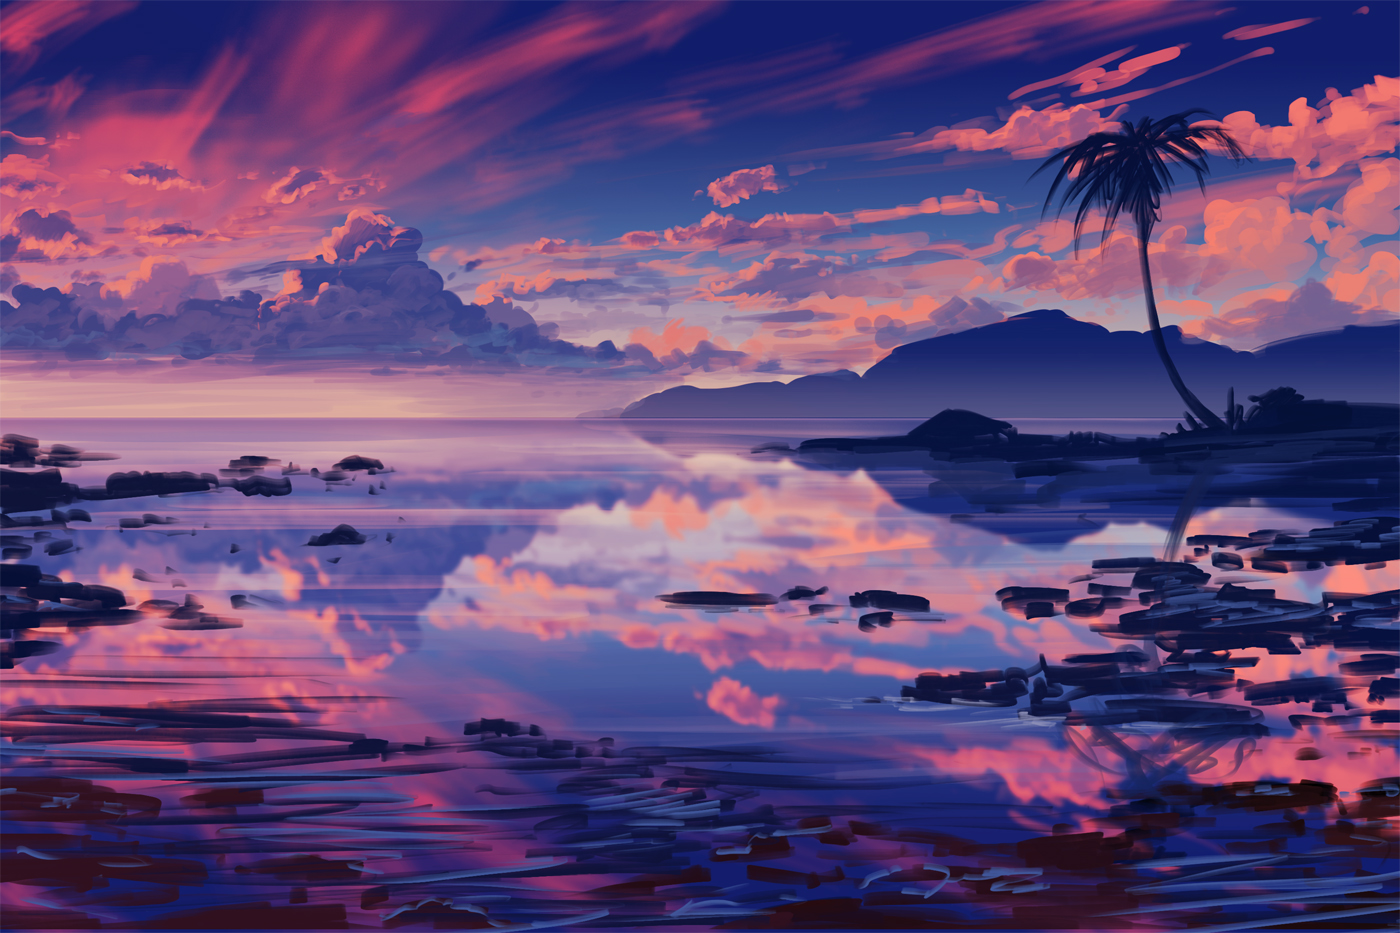 Sunset Sketch Time Lapse Video By Arcipello On Deviantart